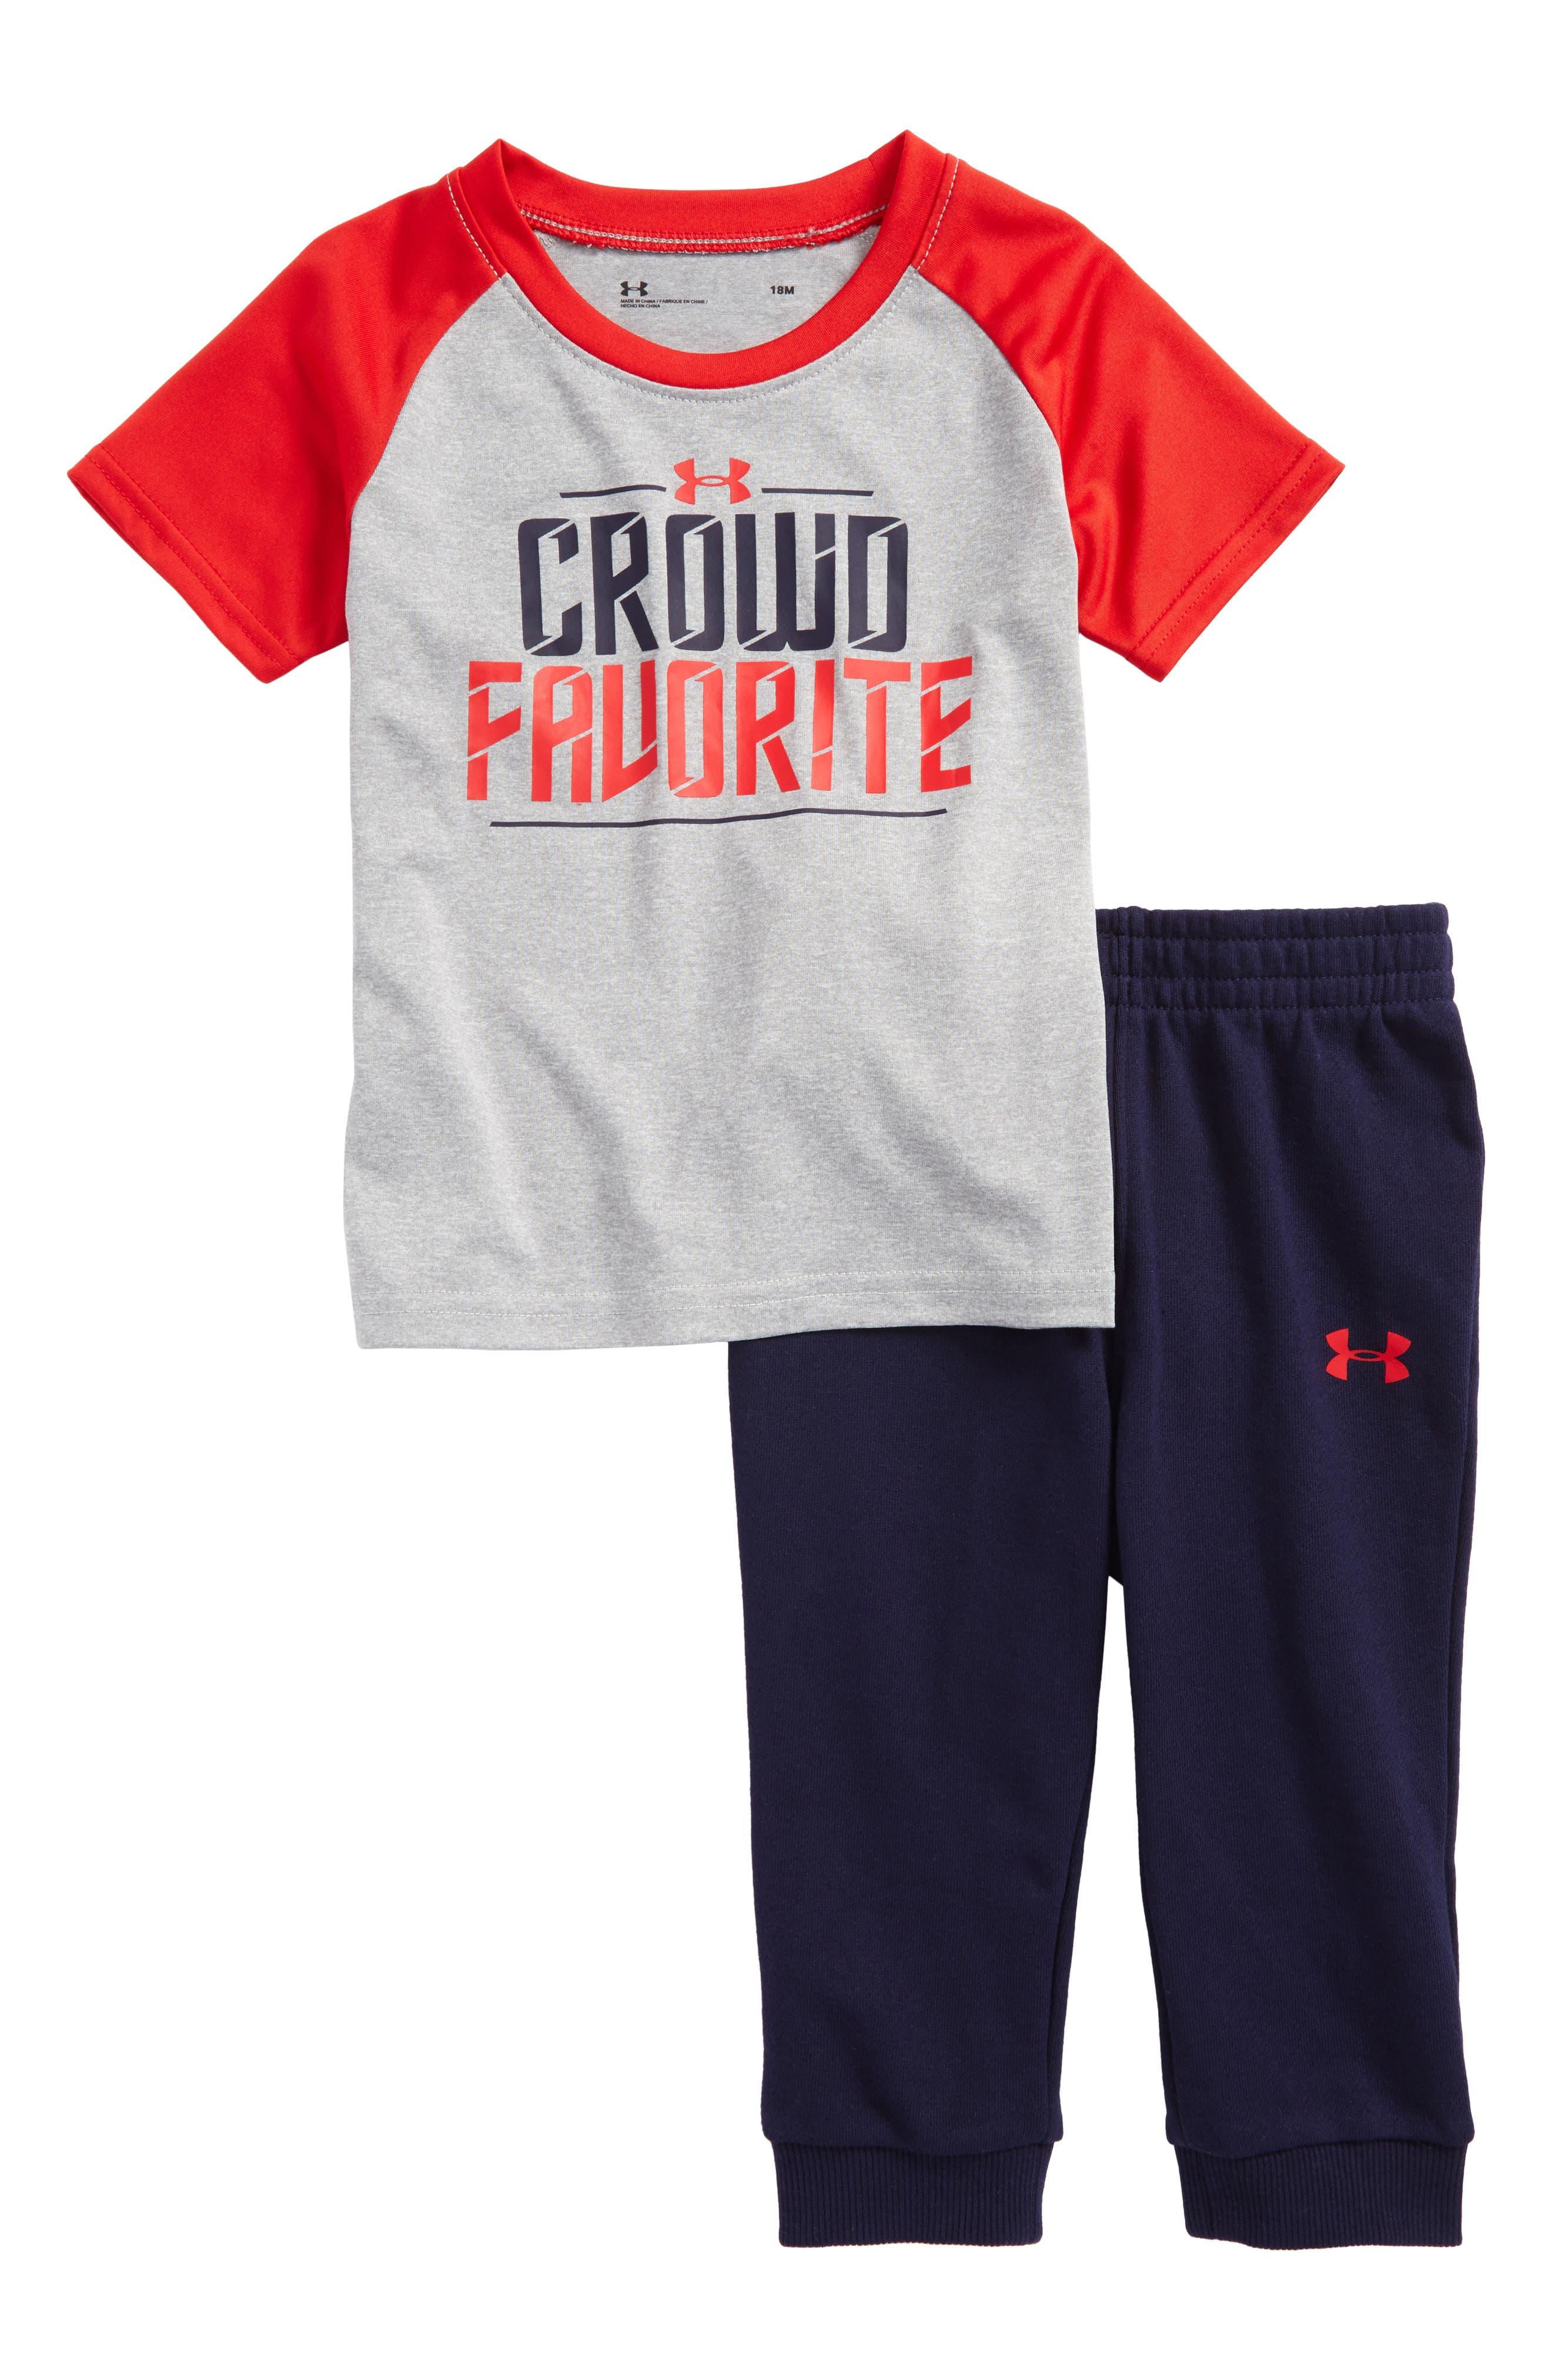 Under Armour Crowd Favorite T-Shirt & Pants Set (Baby Boys)